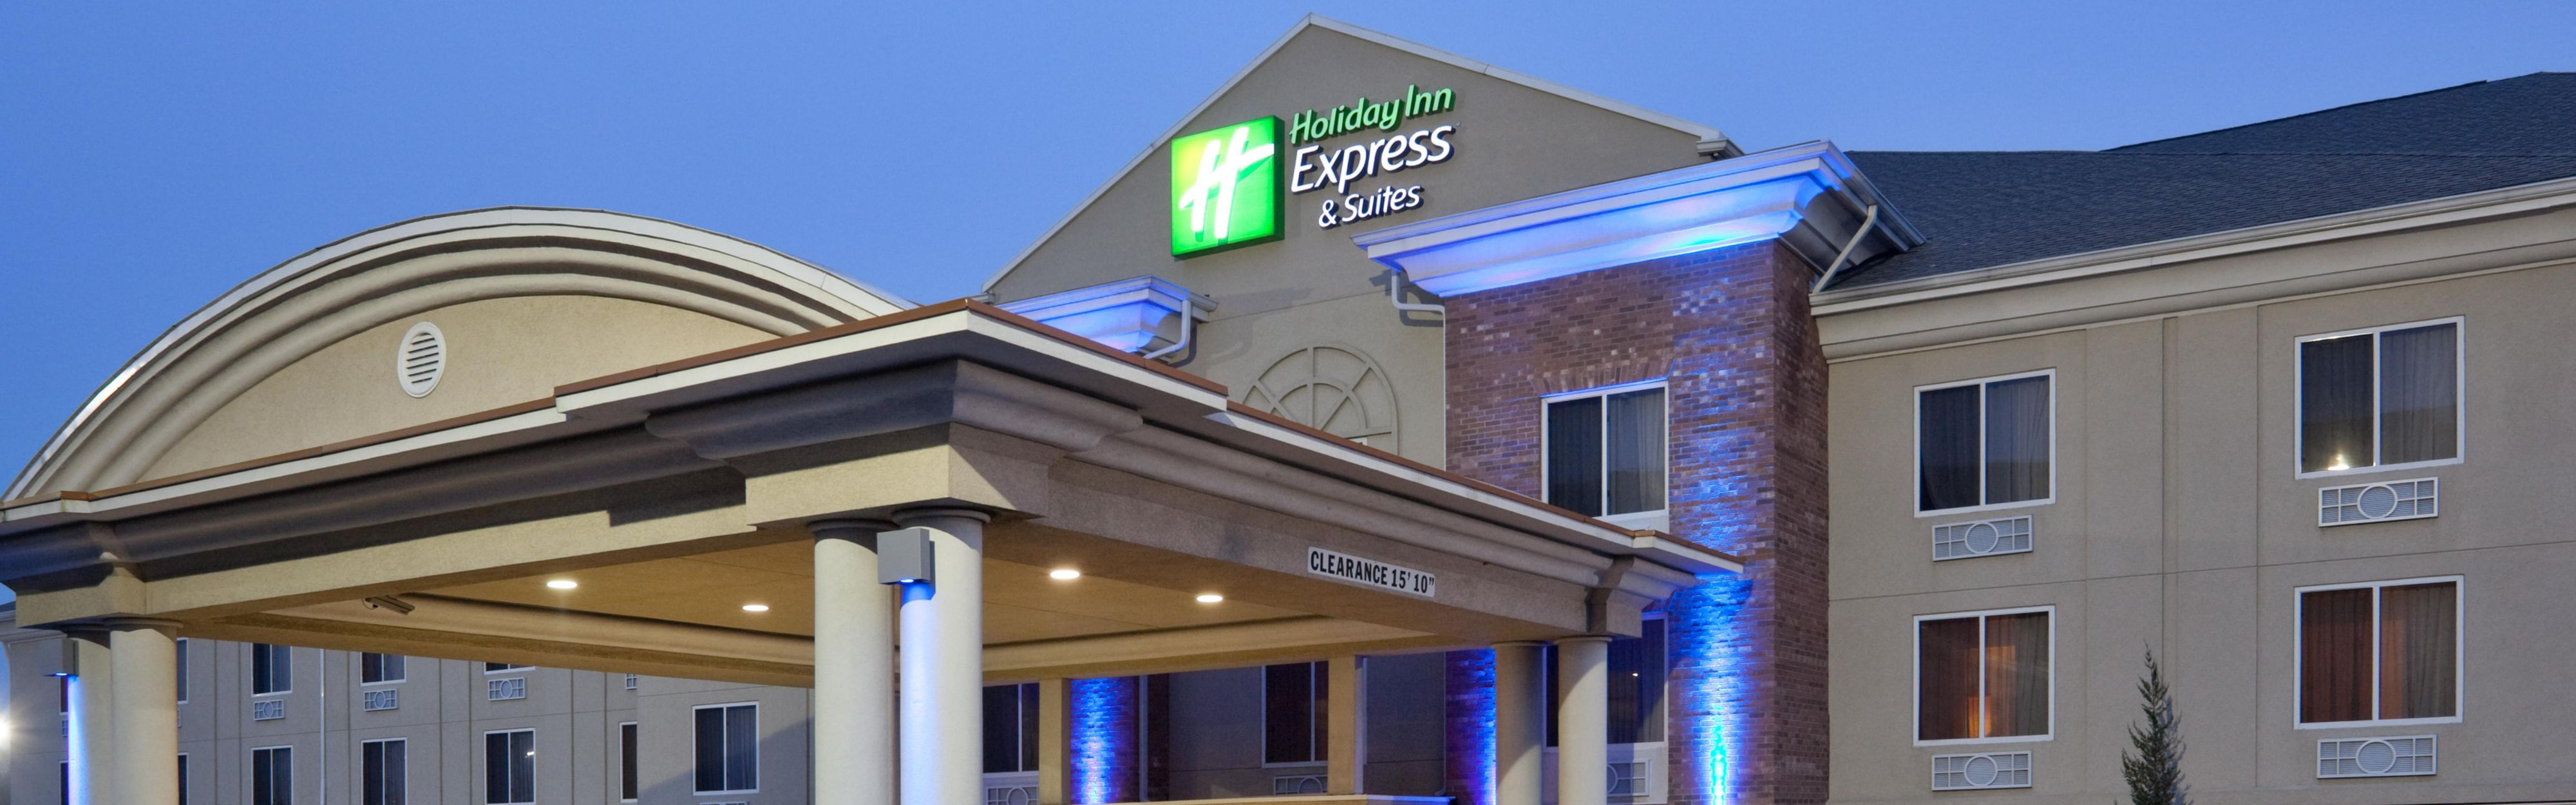 Holiday Inn Express & Suites High Point South image 0